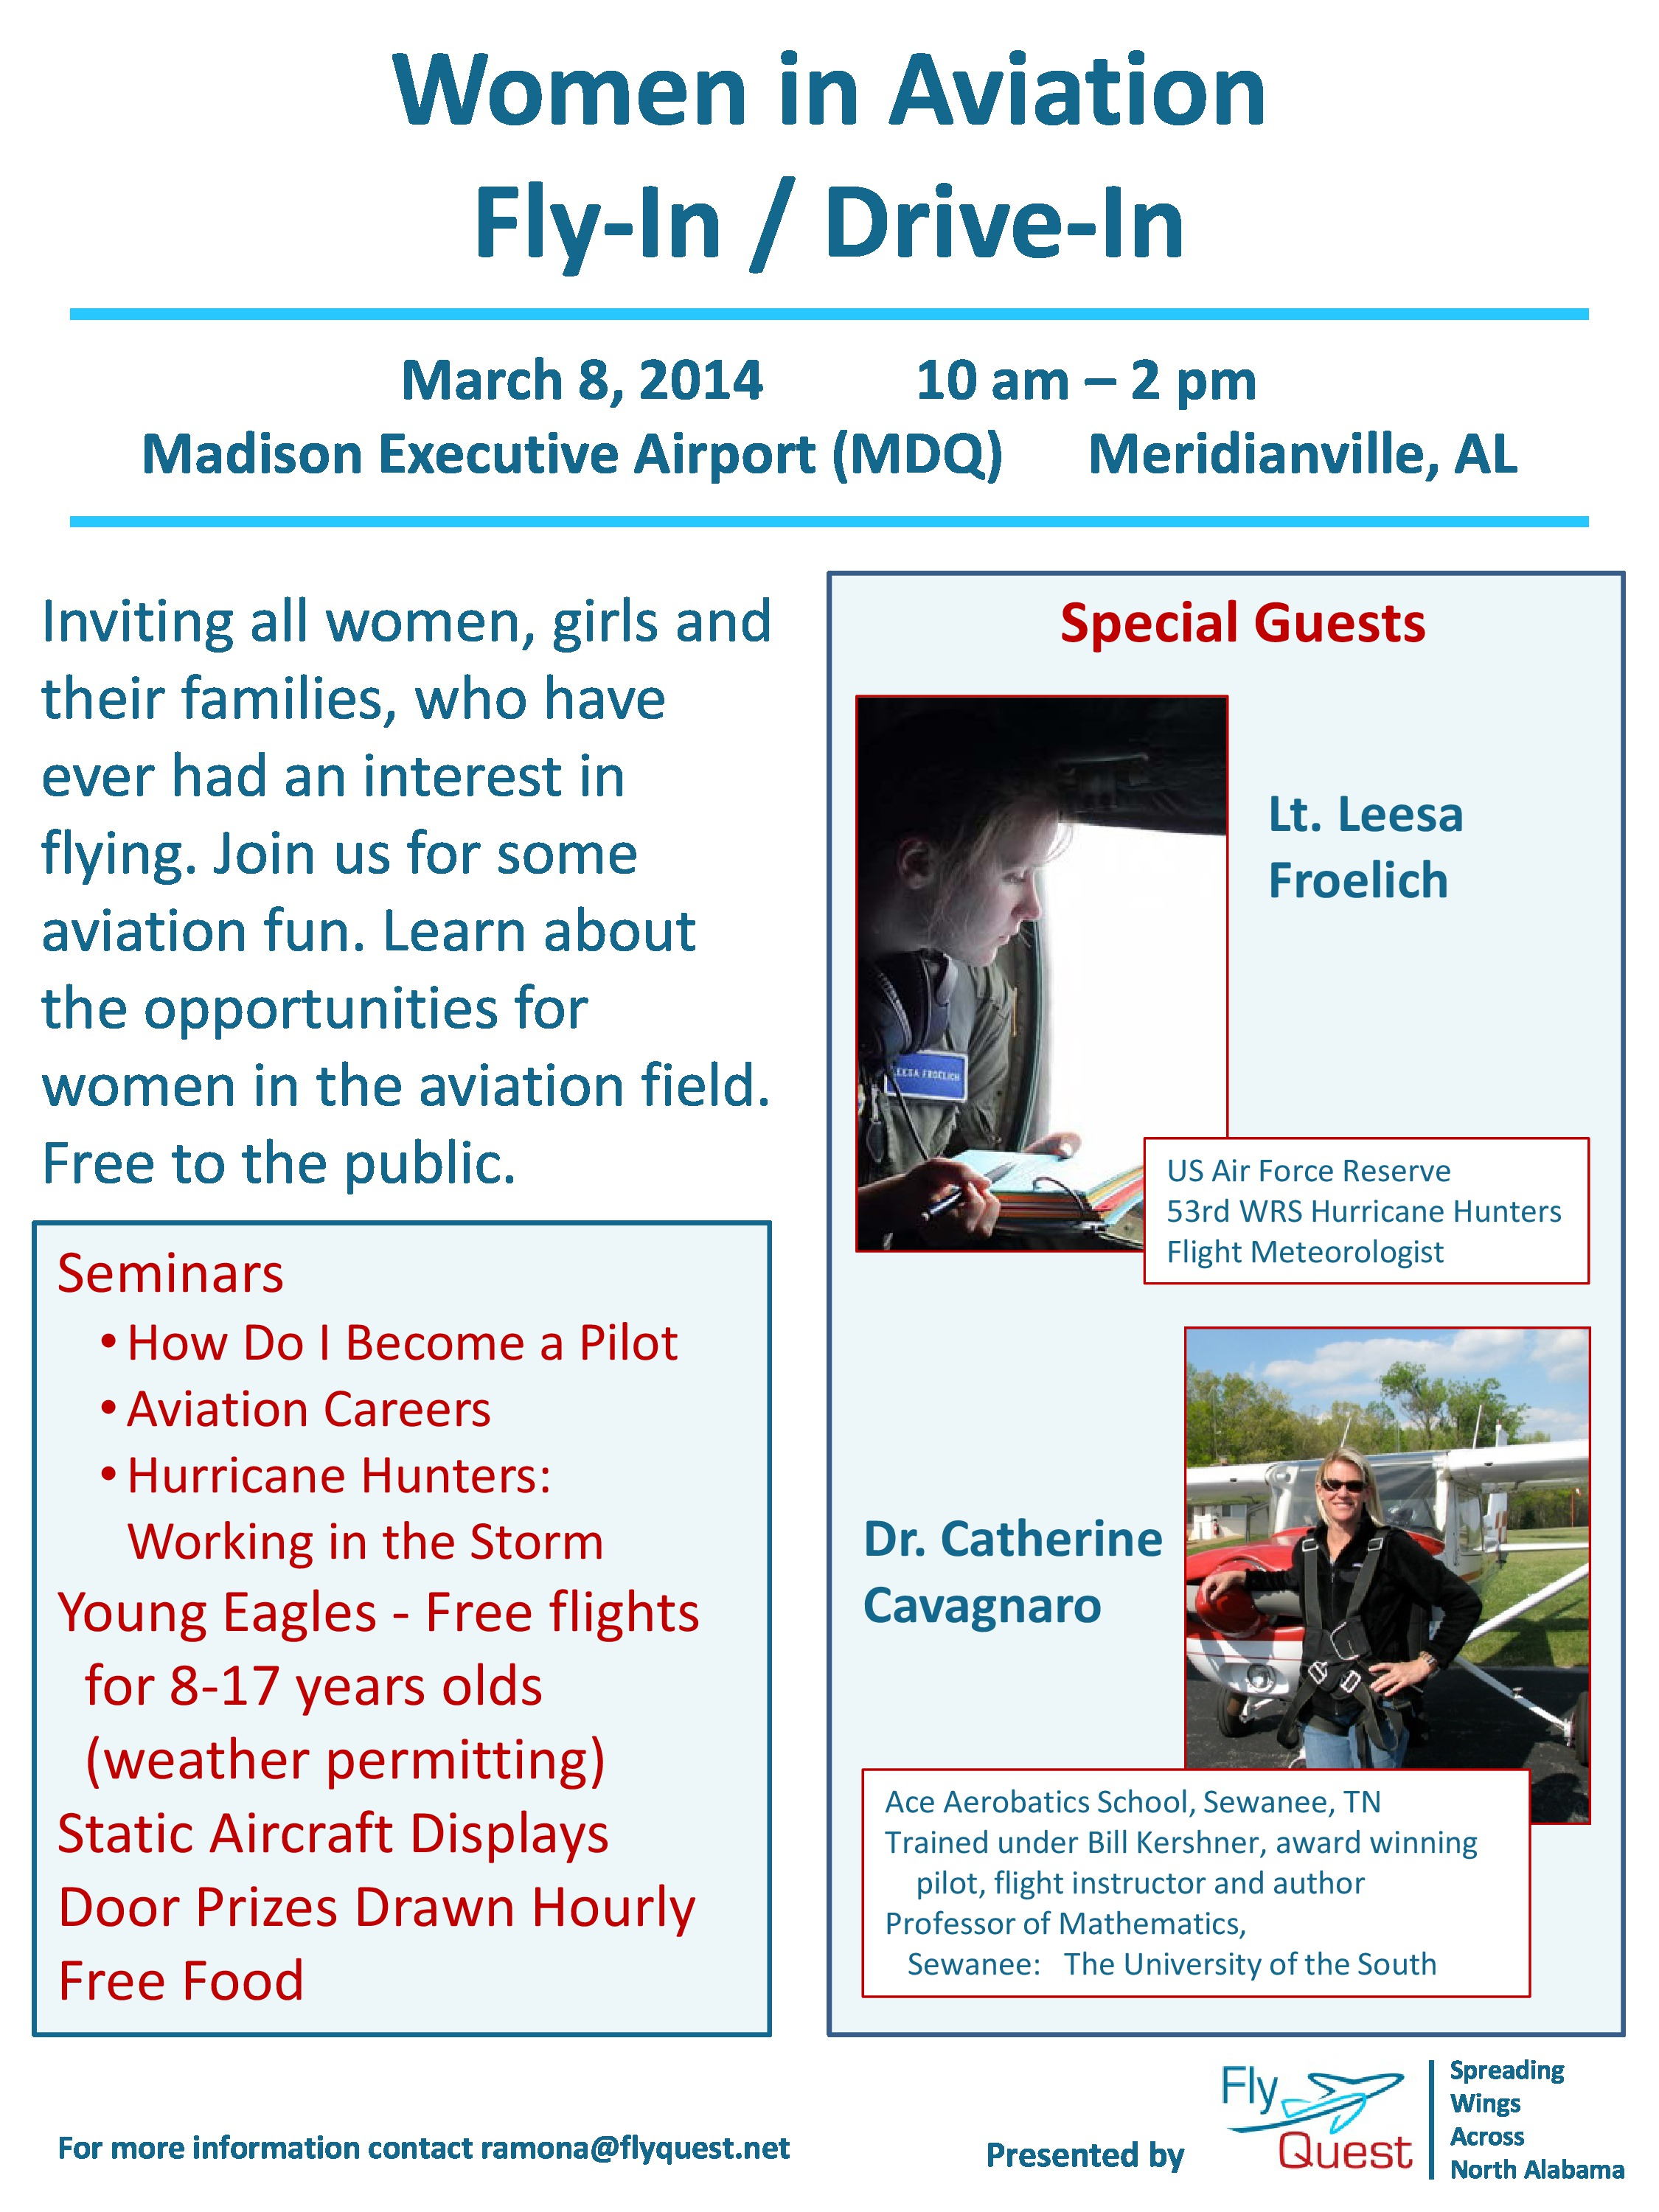 Women In Aviation Fly-in – Alabama